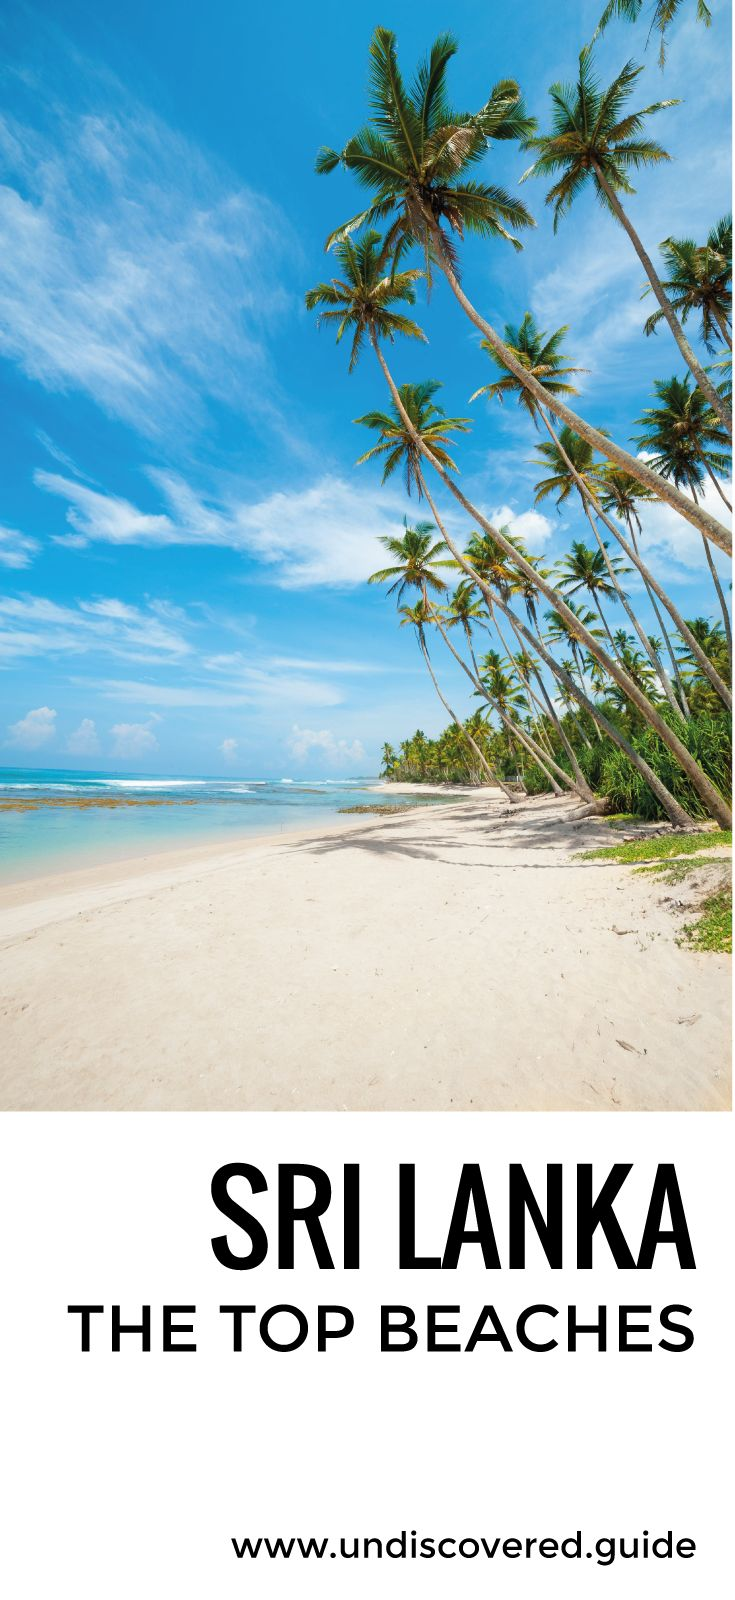 #VisitSriLanka Sri Lanka is blessed with some beautiful sands - here's our guide to the top beaches http://www.undiscovered.guide/sri-lanka/beach-guide #SriLanka #Travel